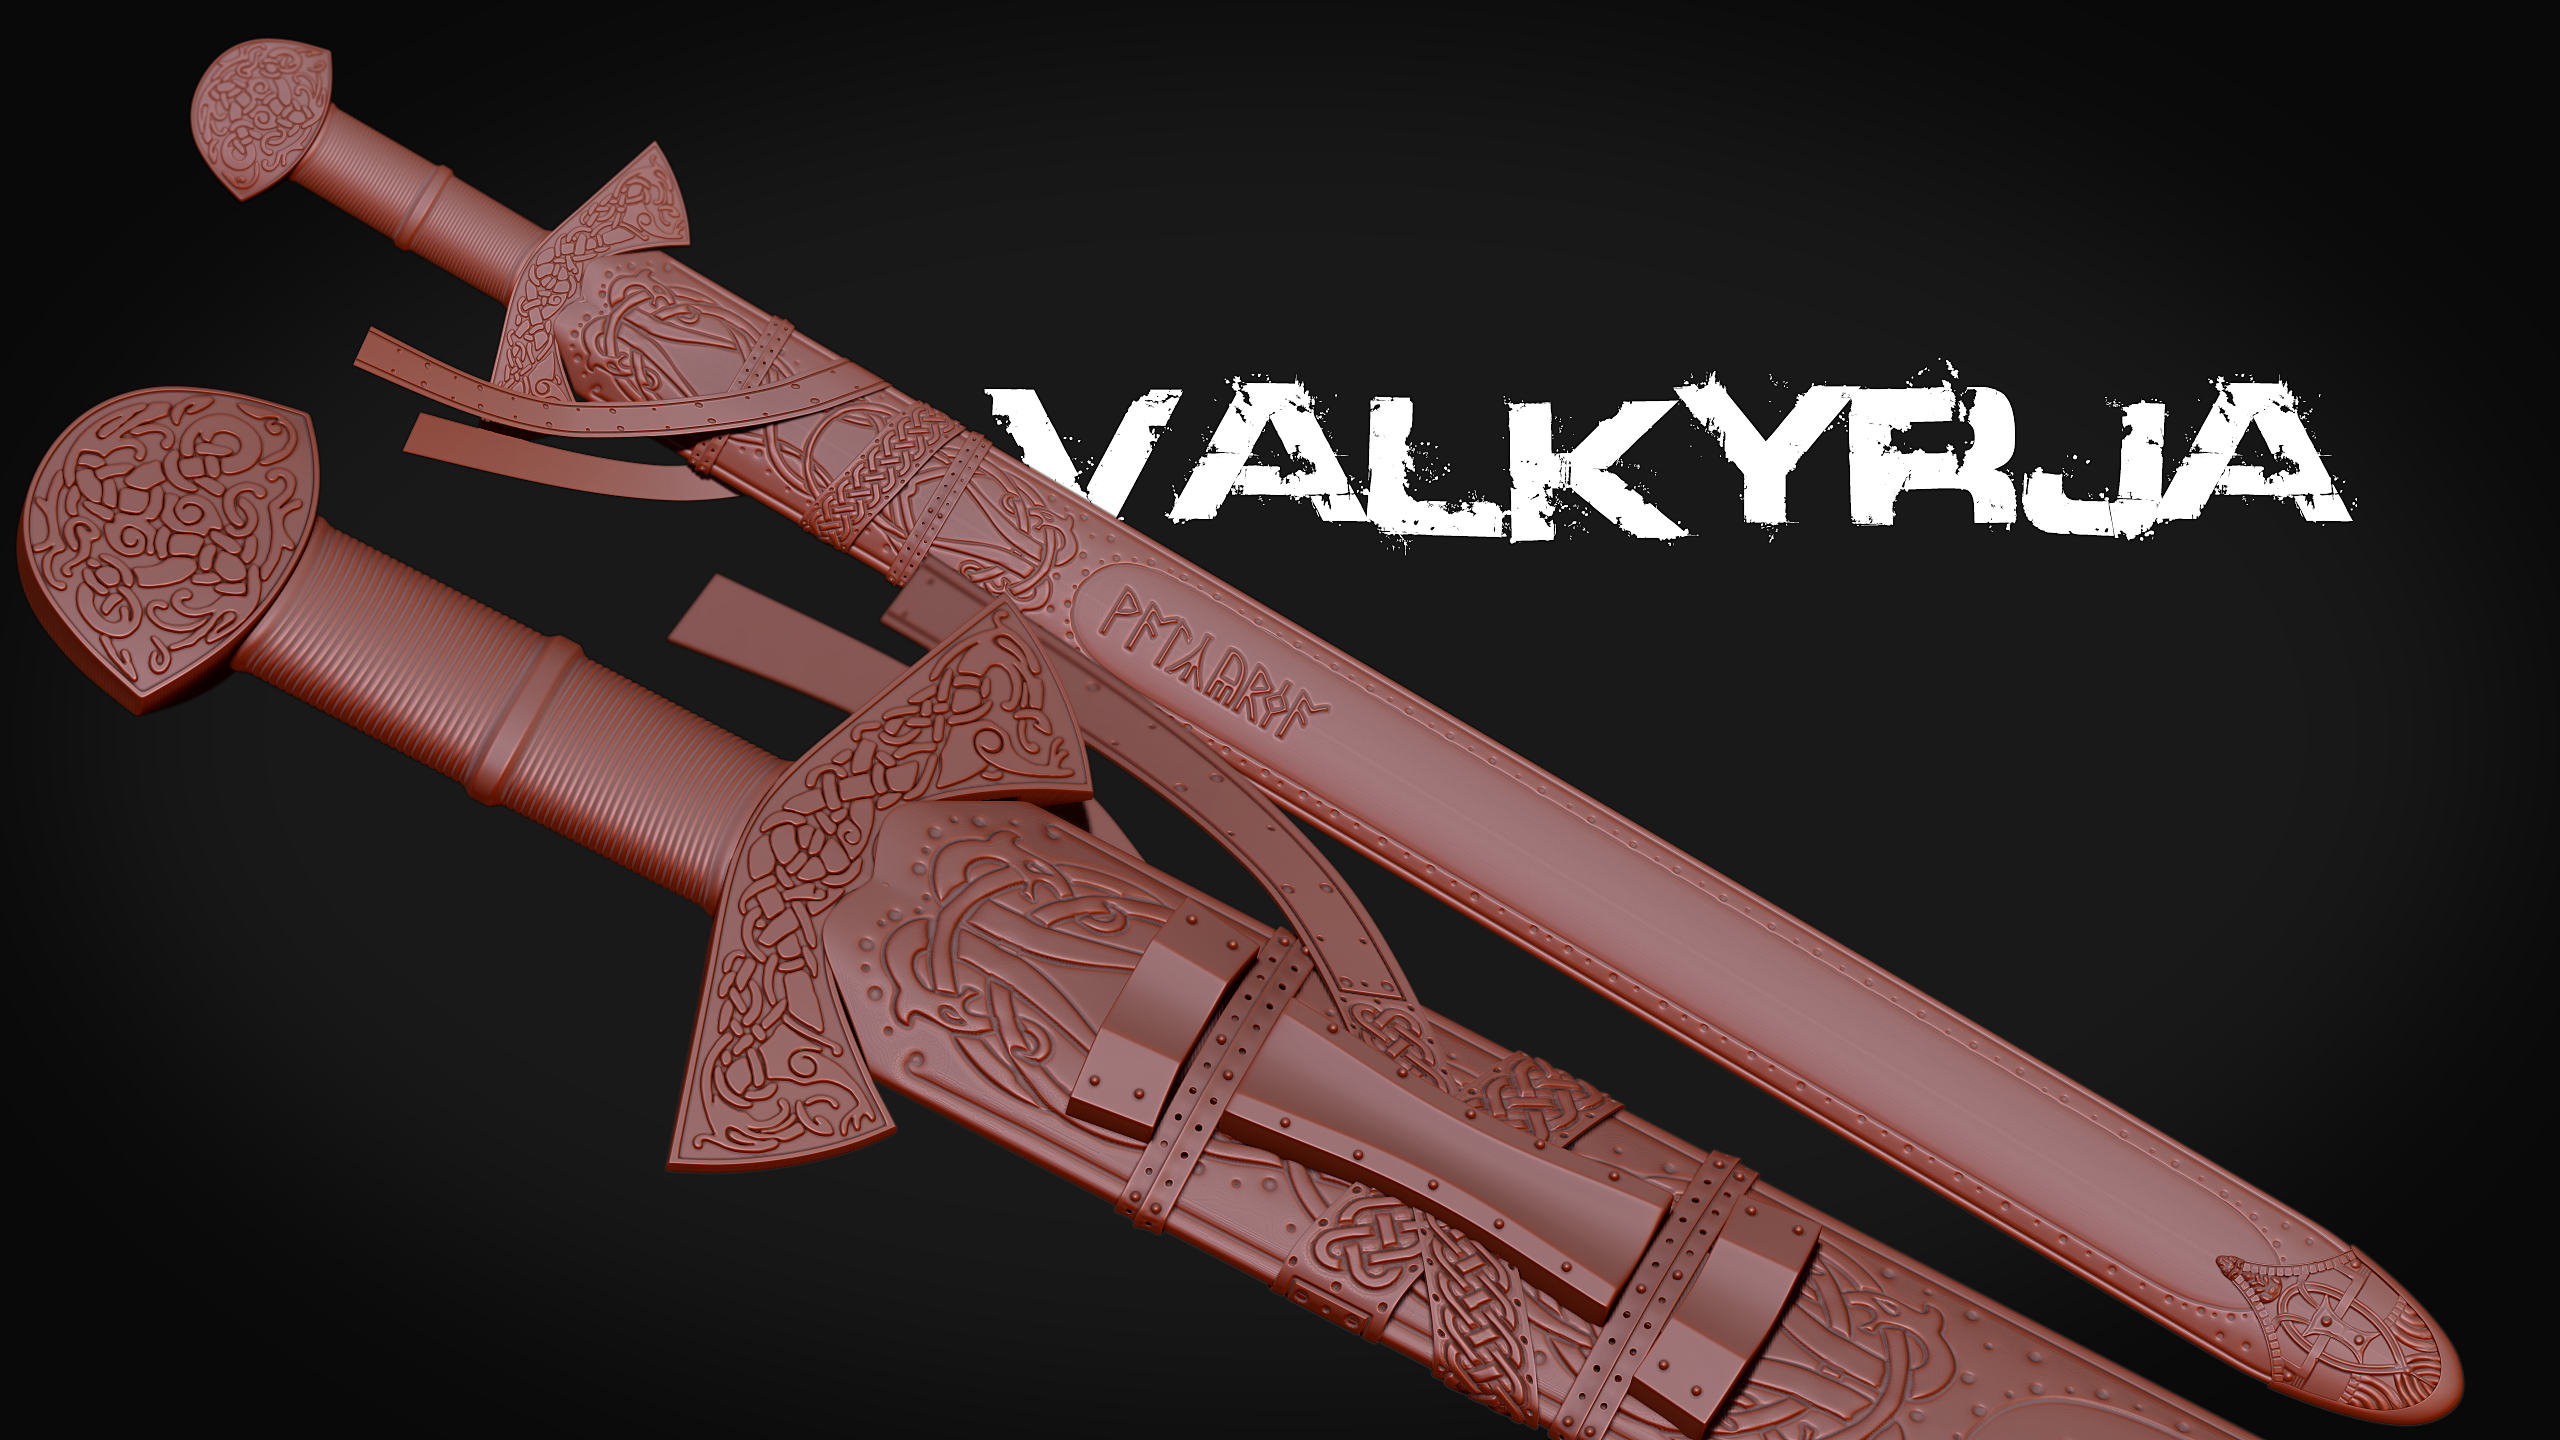 Valkyrja highpoly hd render